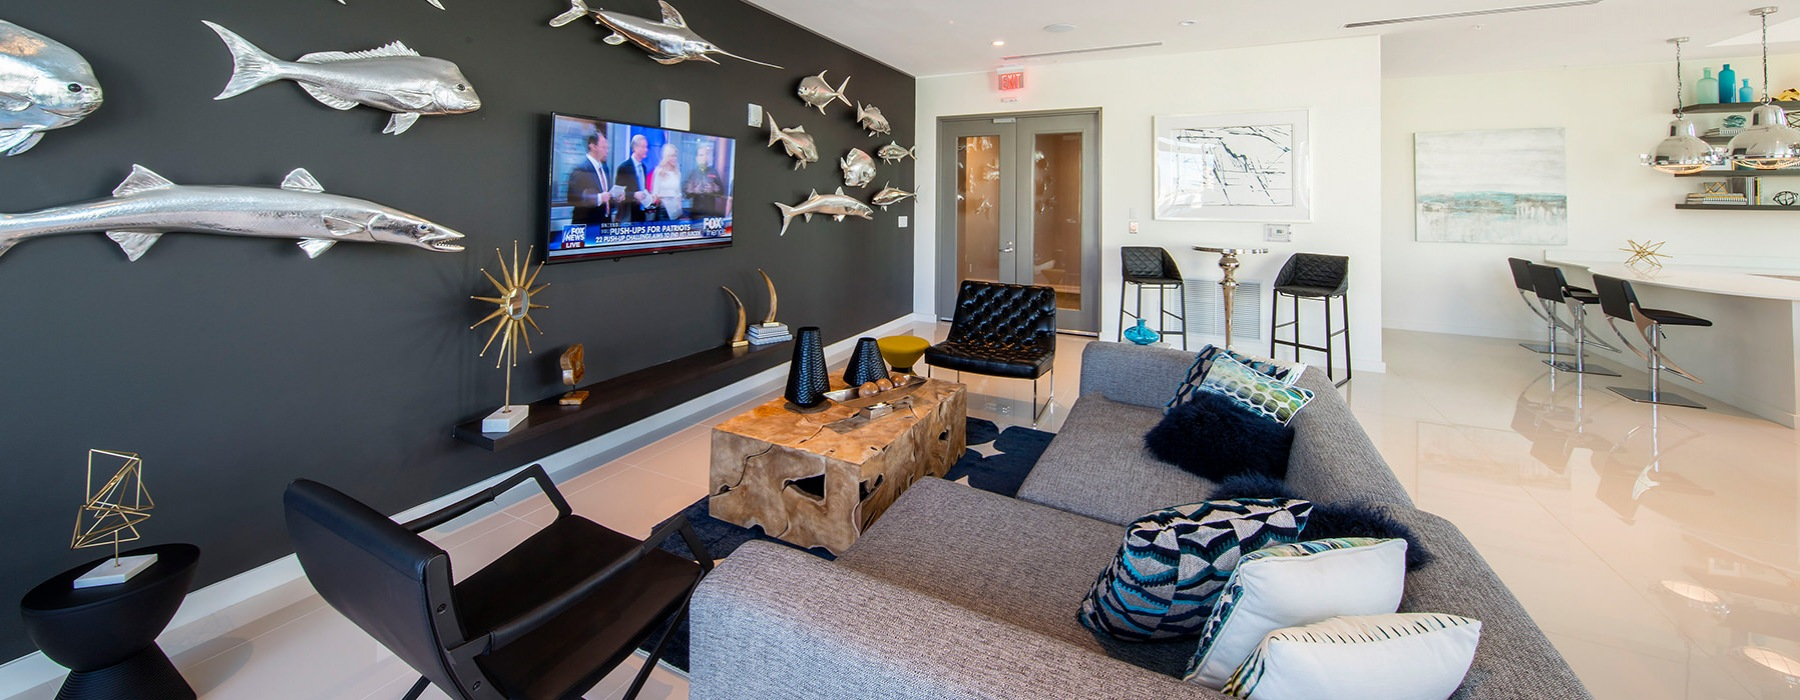 Resident lounge with comfortable seating and entertainment